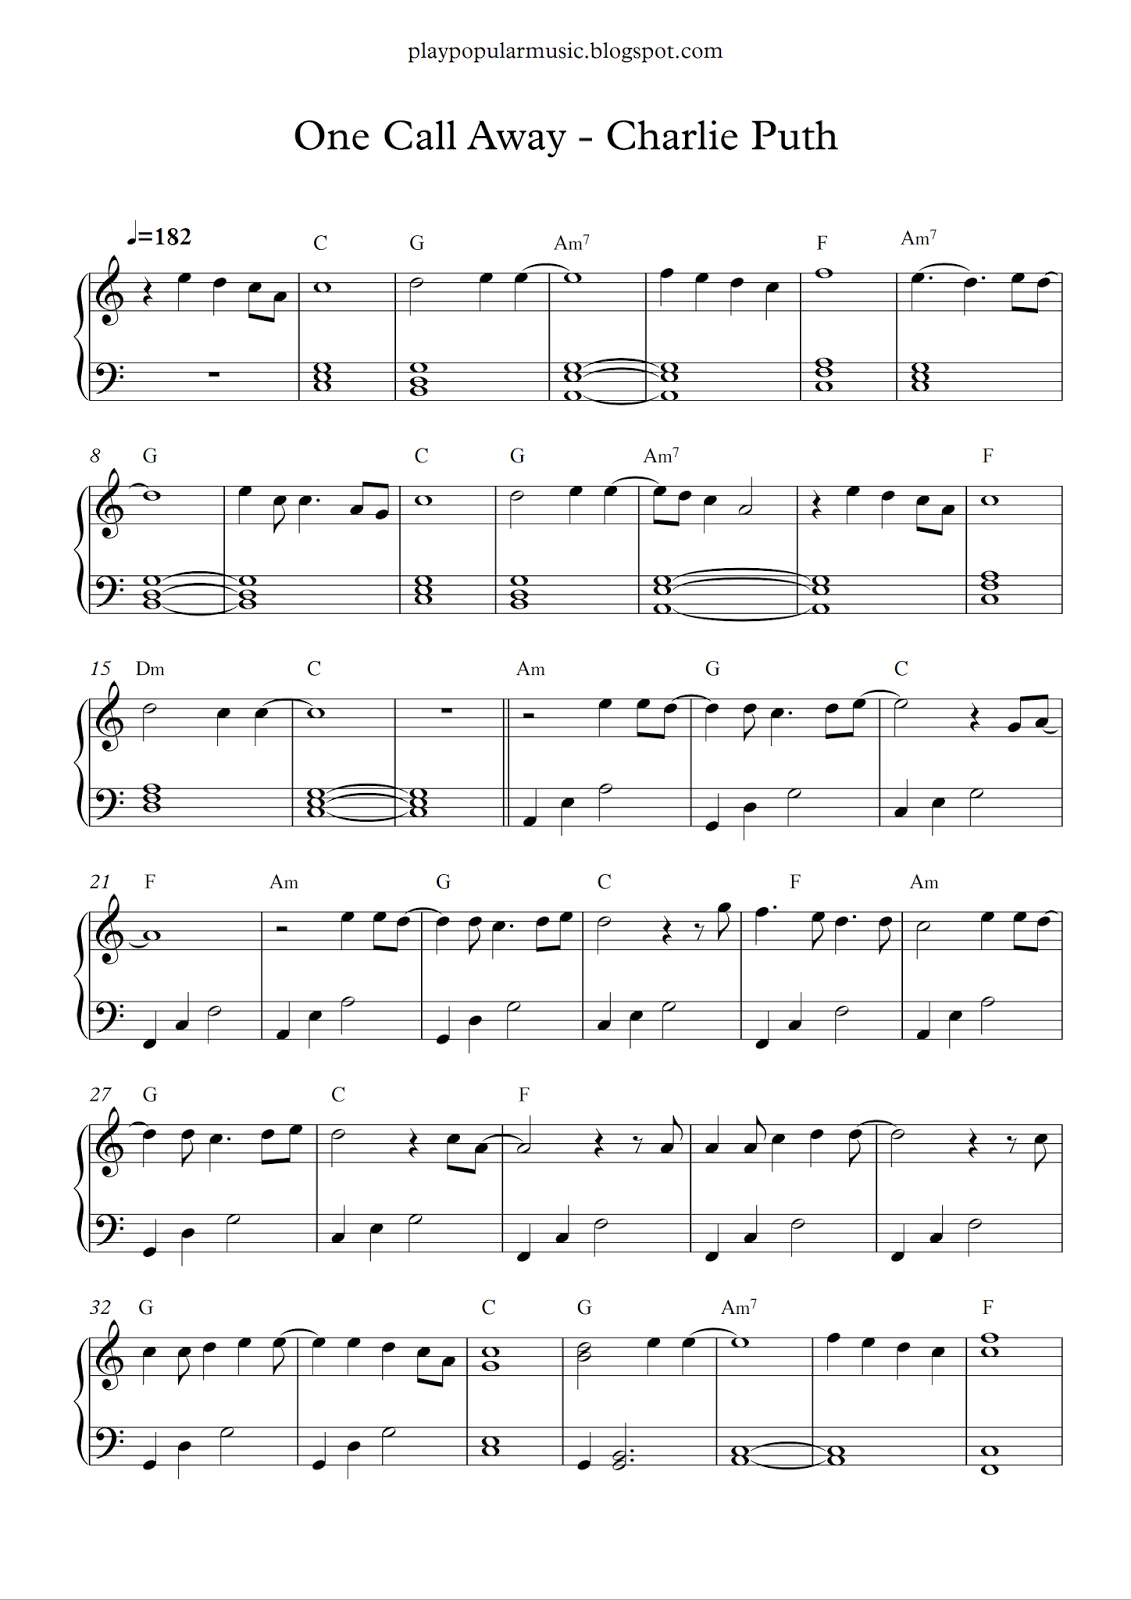 This is a graphic of Universal Piano Sheet Music Free Printable Popular Songs